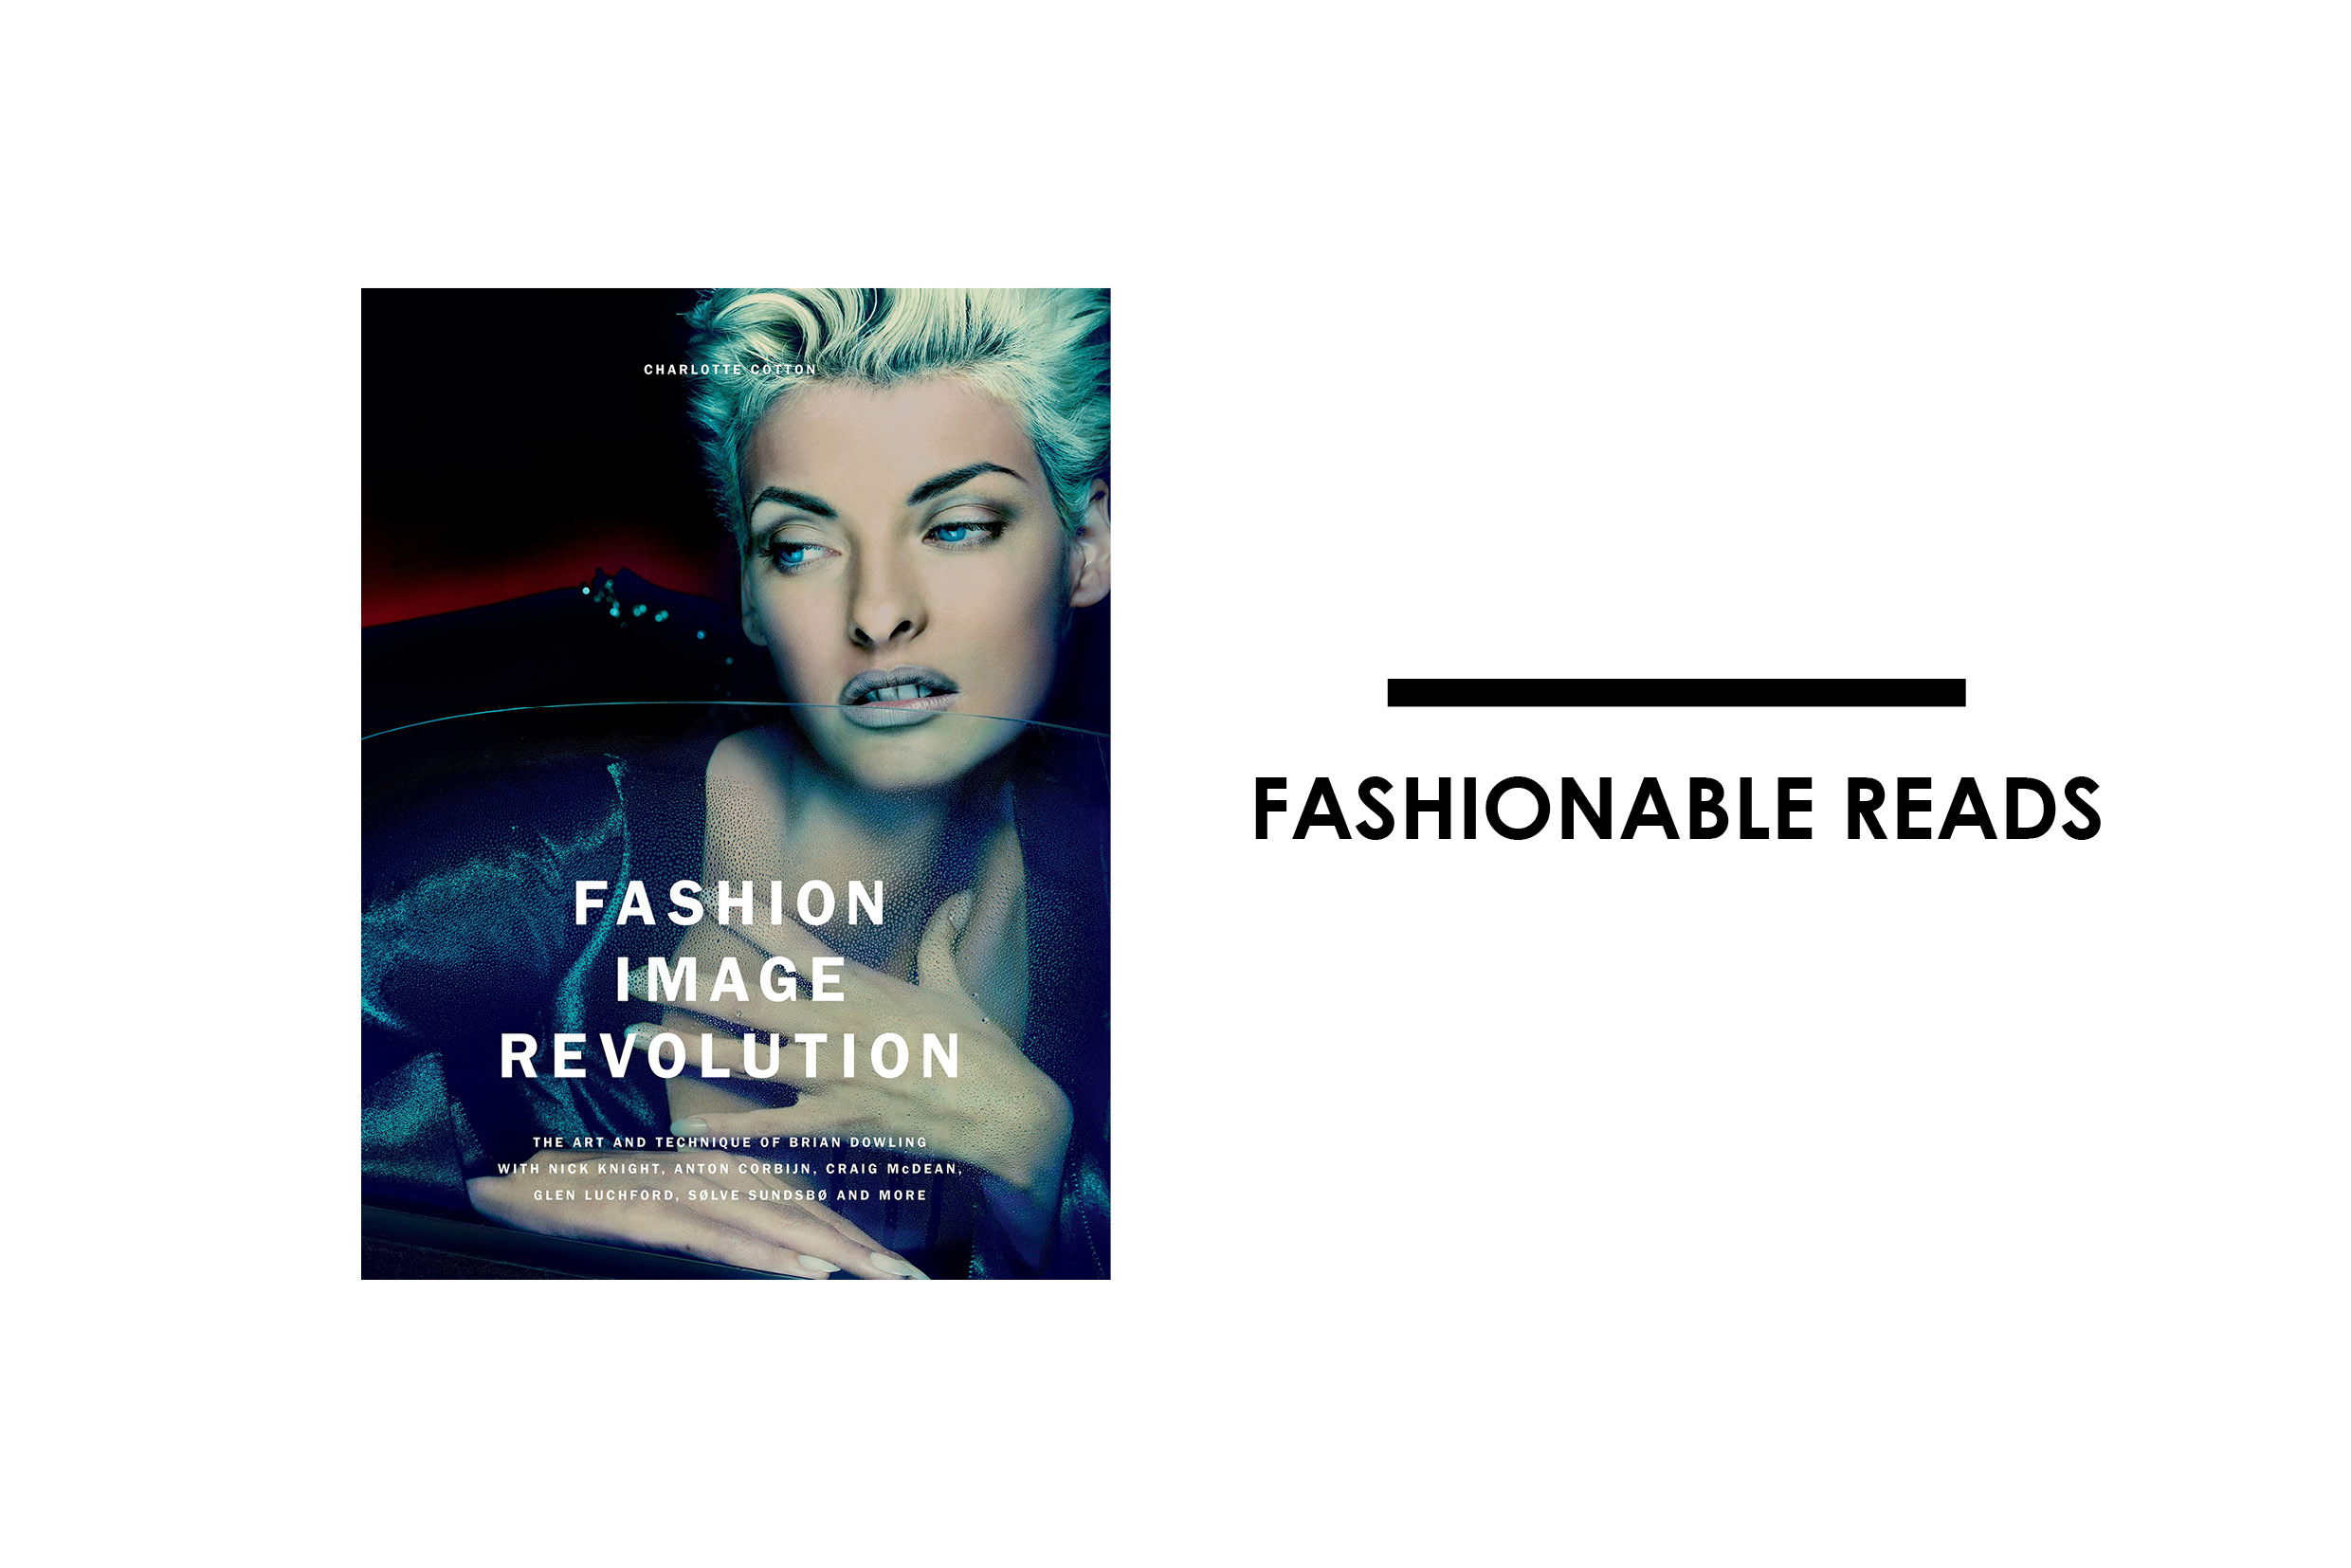 FASHION IMAGE REVOLUTION By Charlotte Cotton